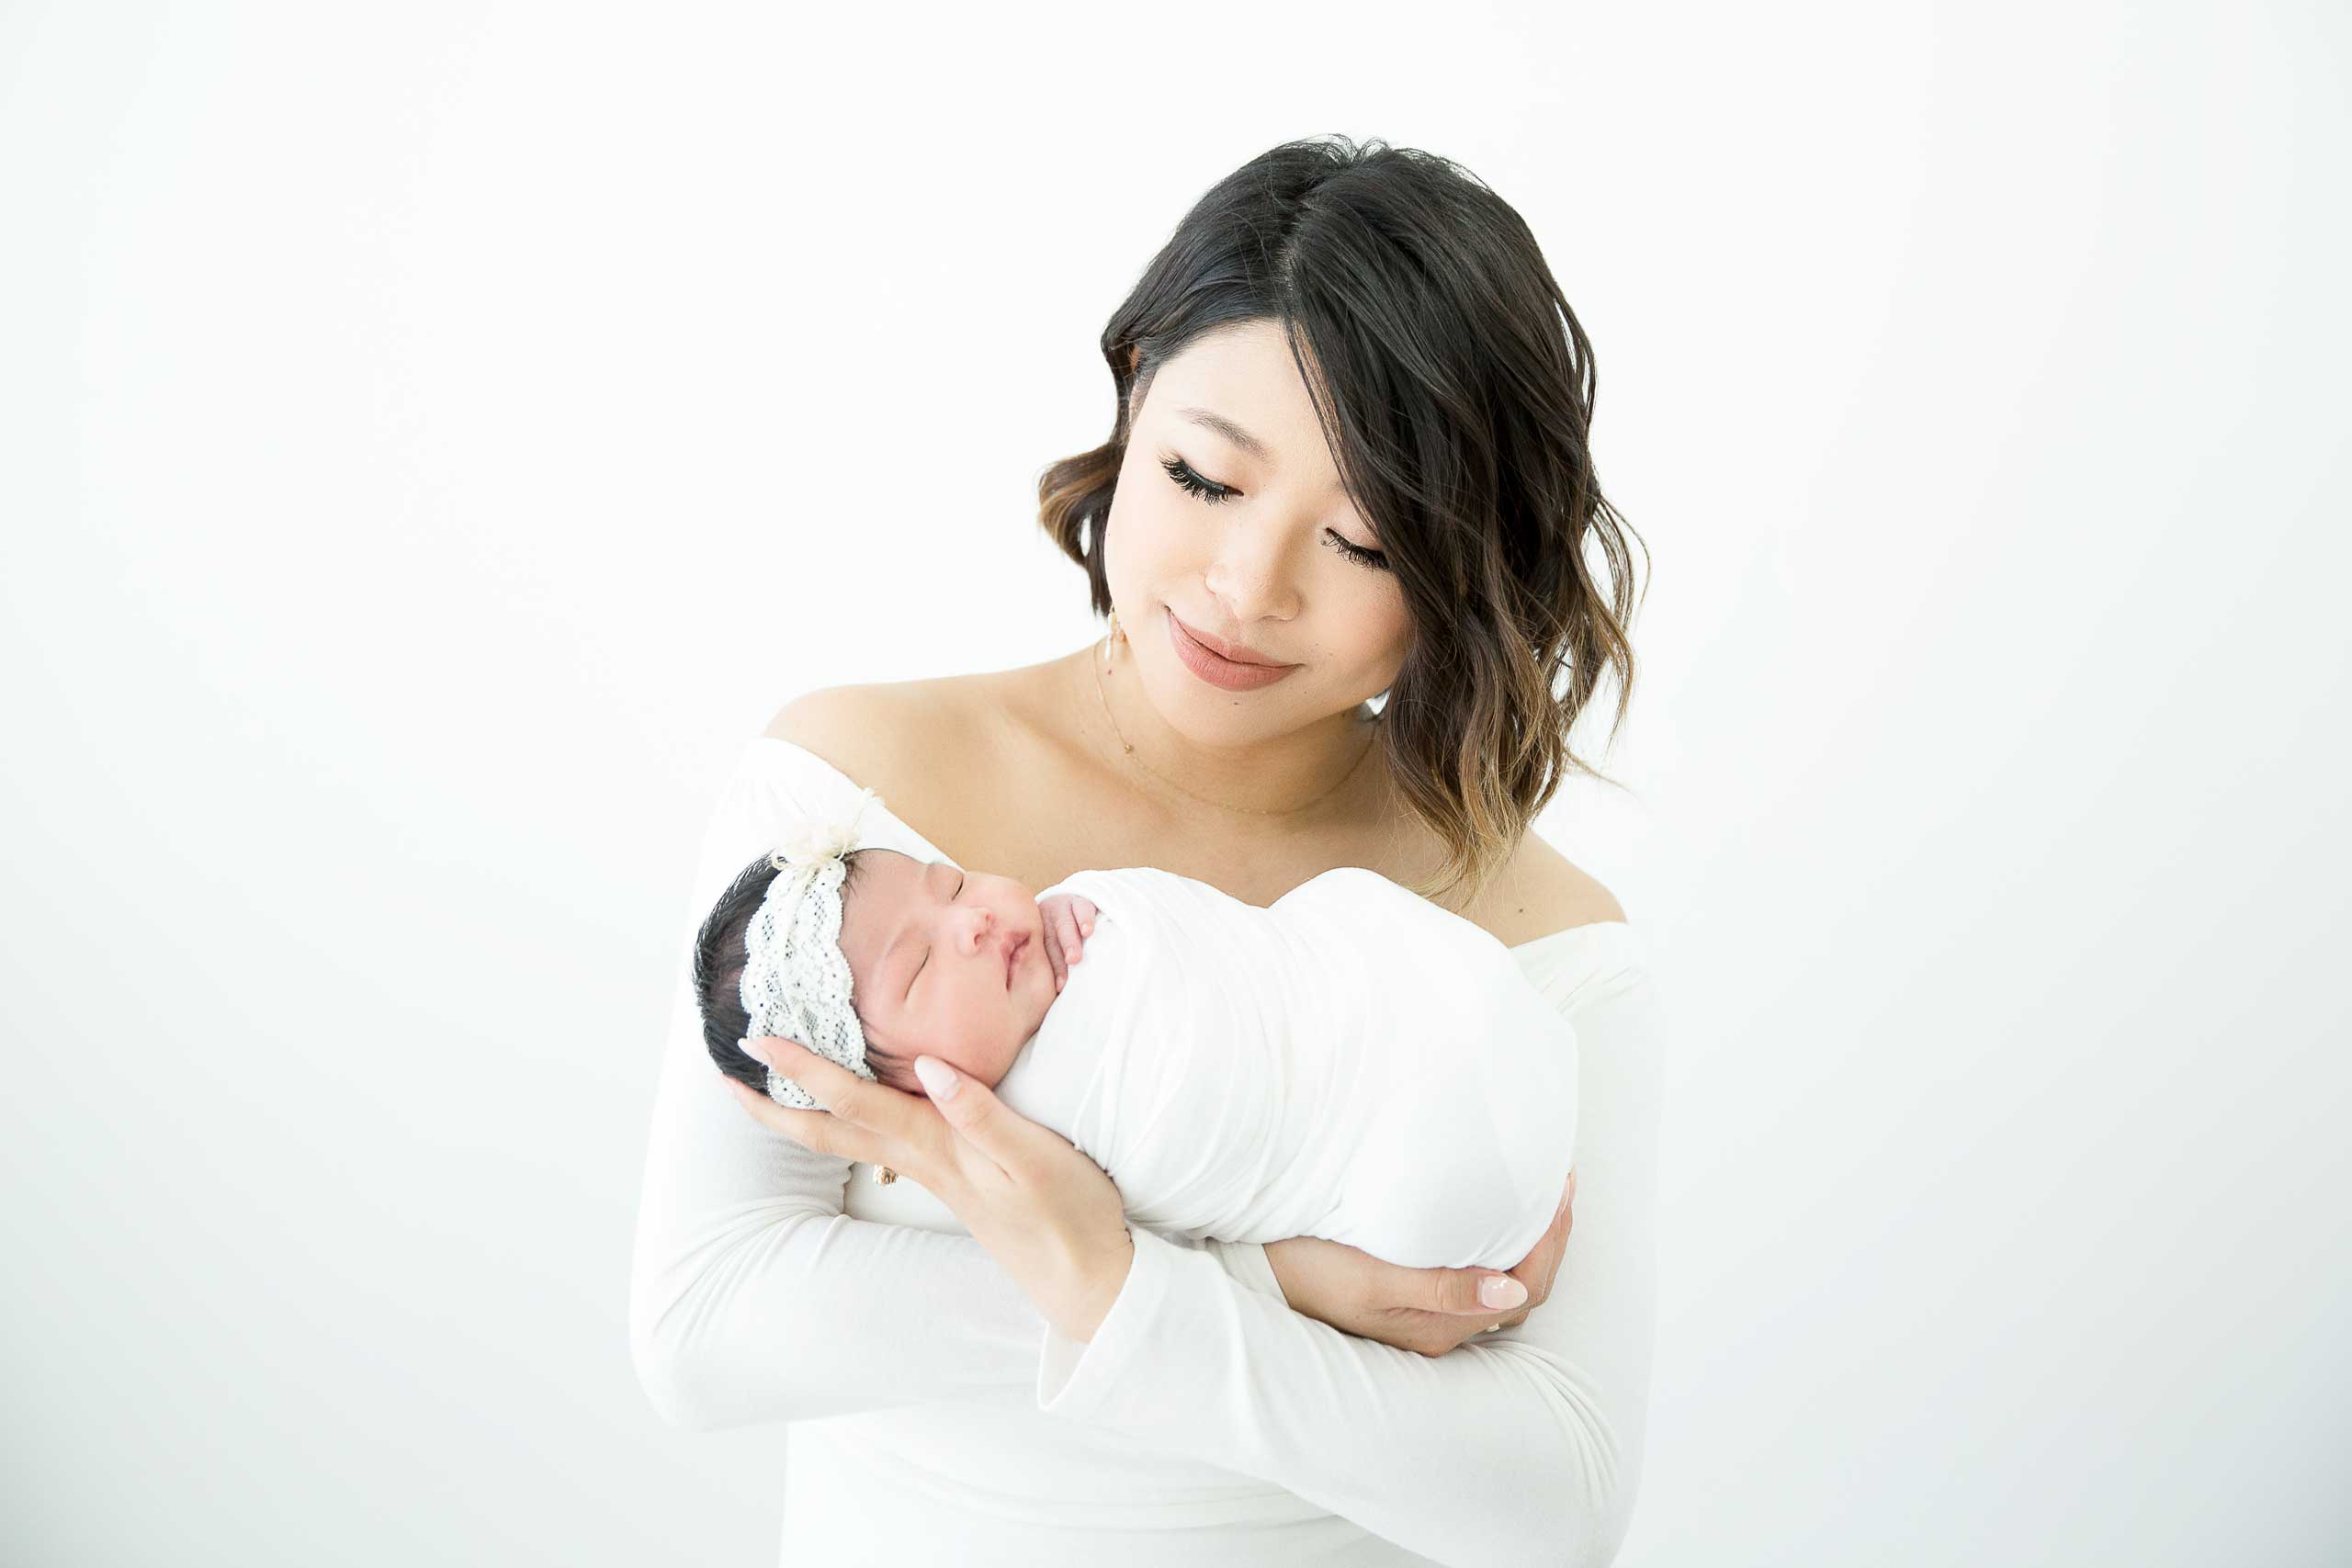 newborn photo session taken by Ramina Magid Photography in Los Angeles 767645